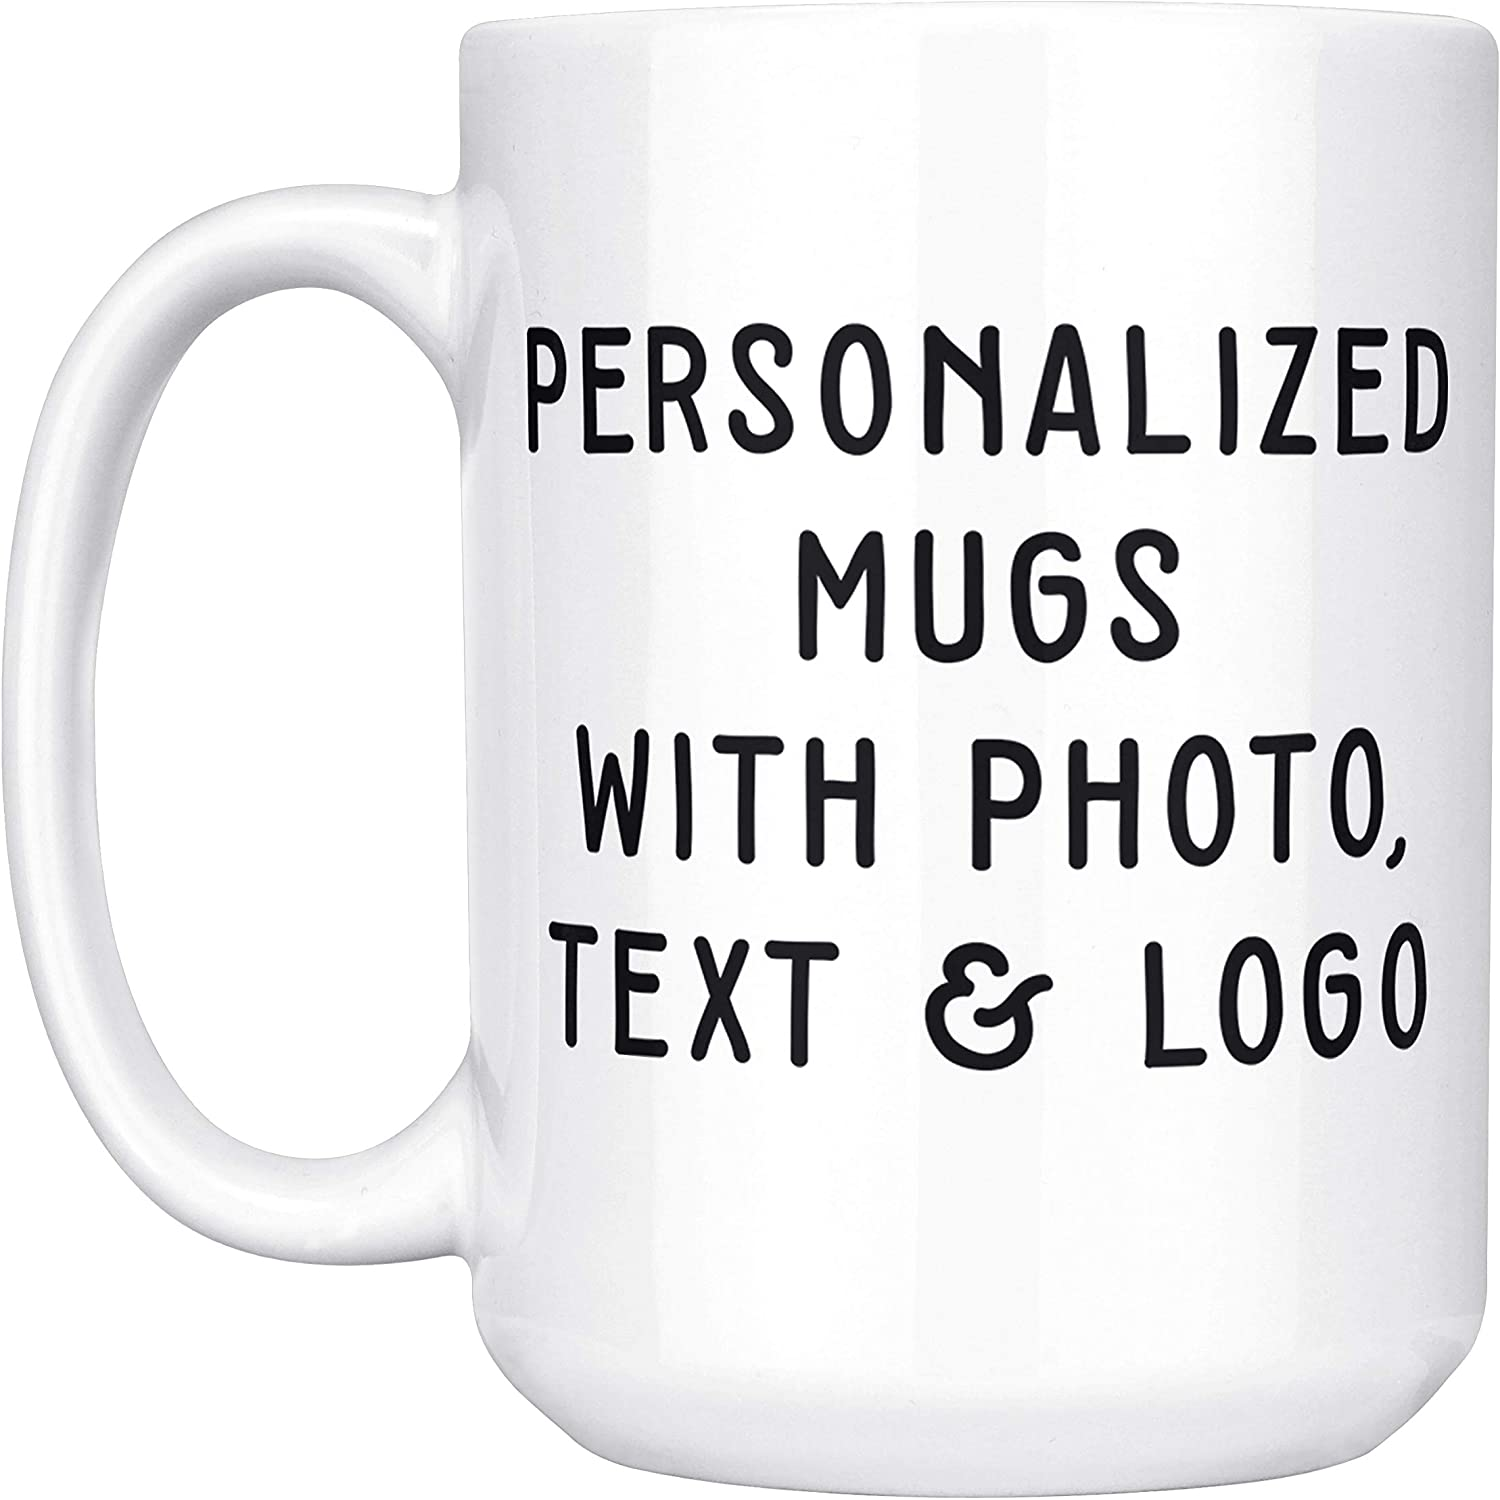 Custom Photo Mugs - 15 oz. Customized Large Coffee Mug - Add Photo, Logo, Picture or Text on Coffee Mugs, Ceramic Custom Mug, Great Photo Gifts for Mom, Dad and Office